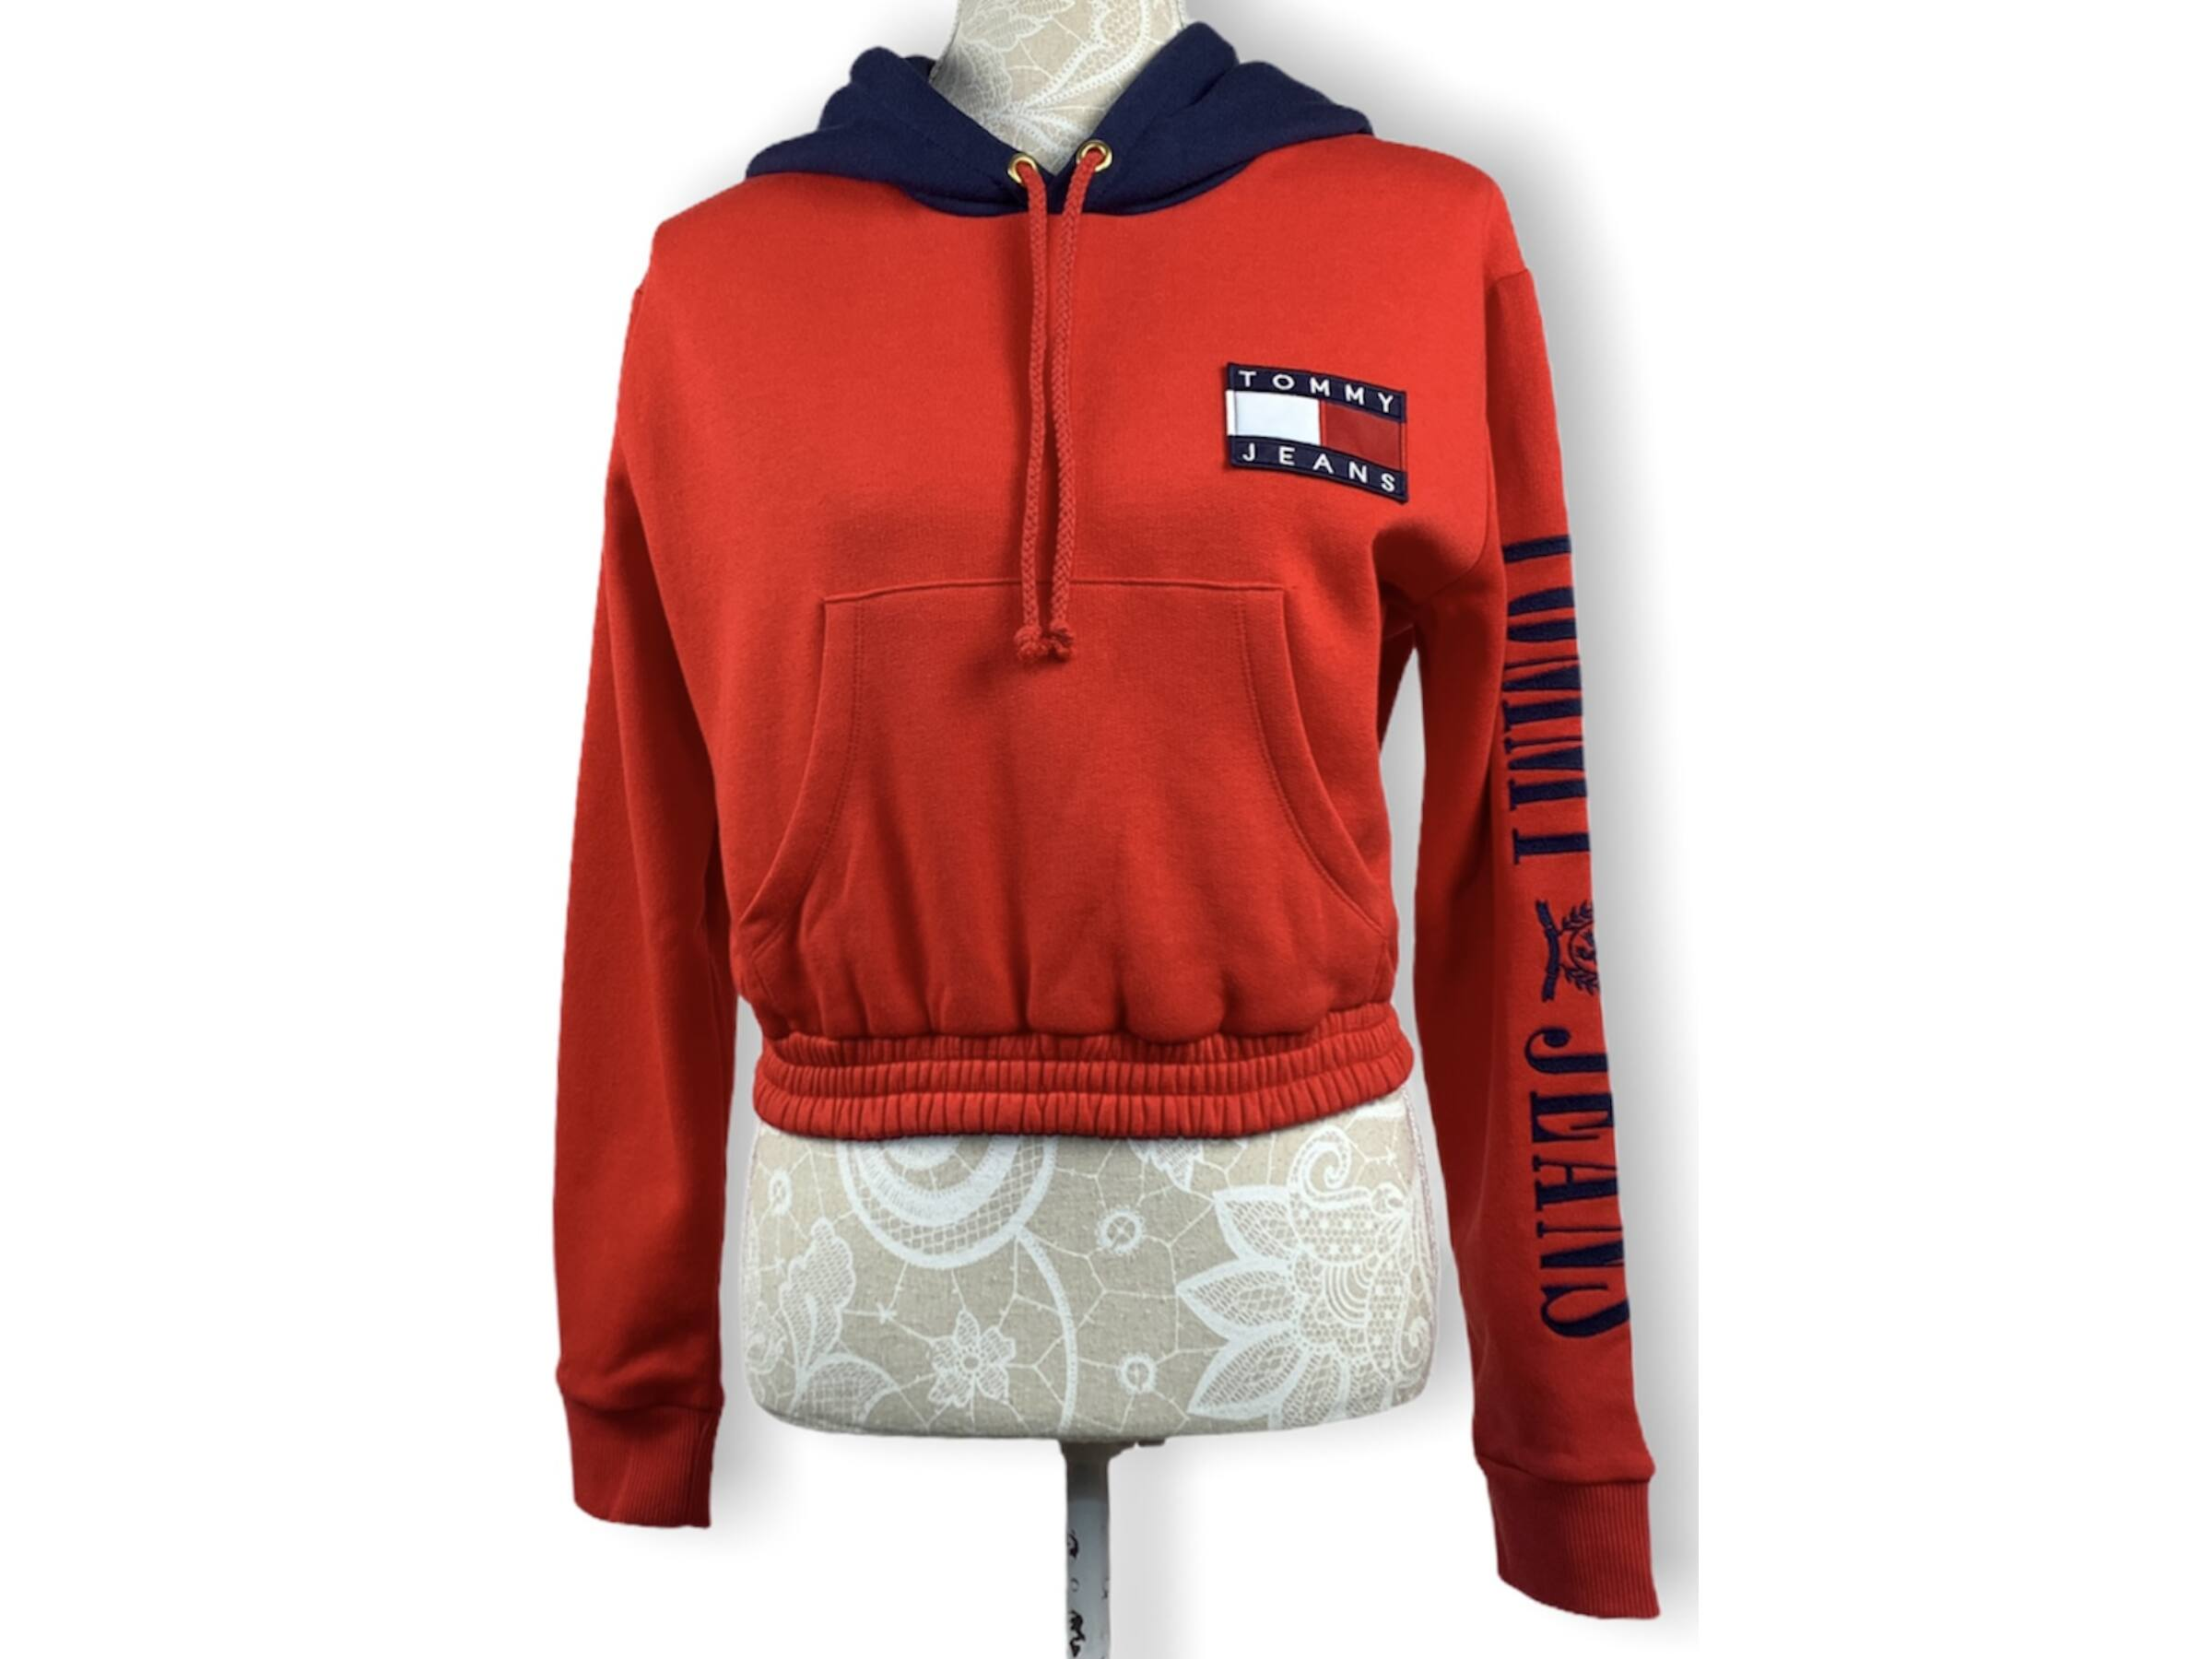 Tommy Jeans pulóver (S)